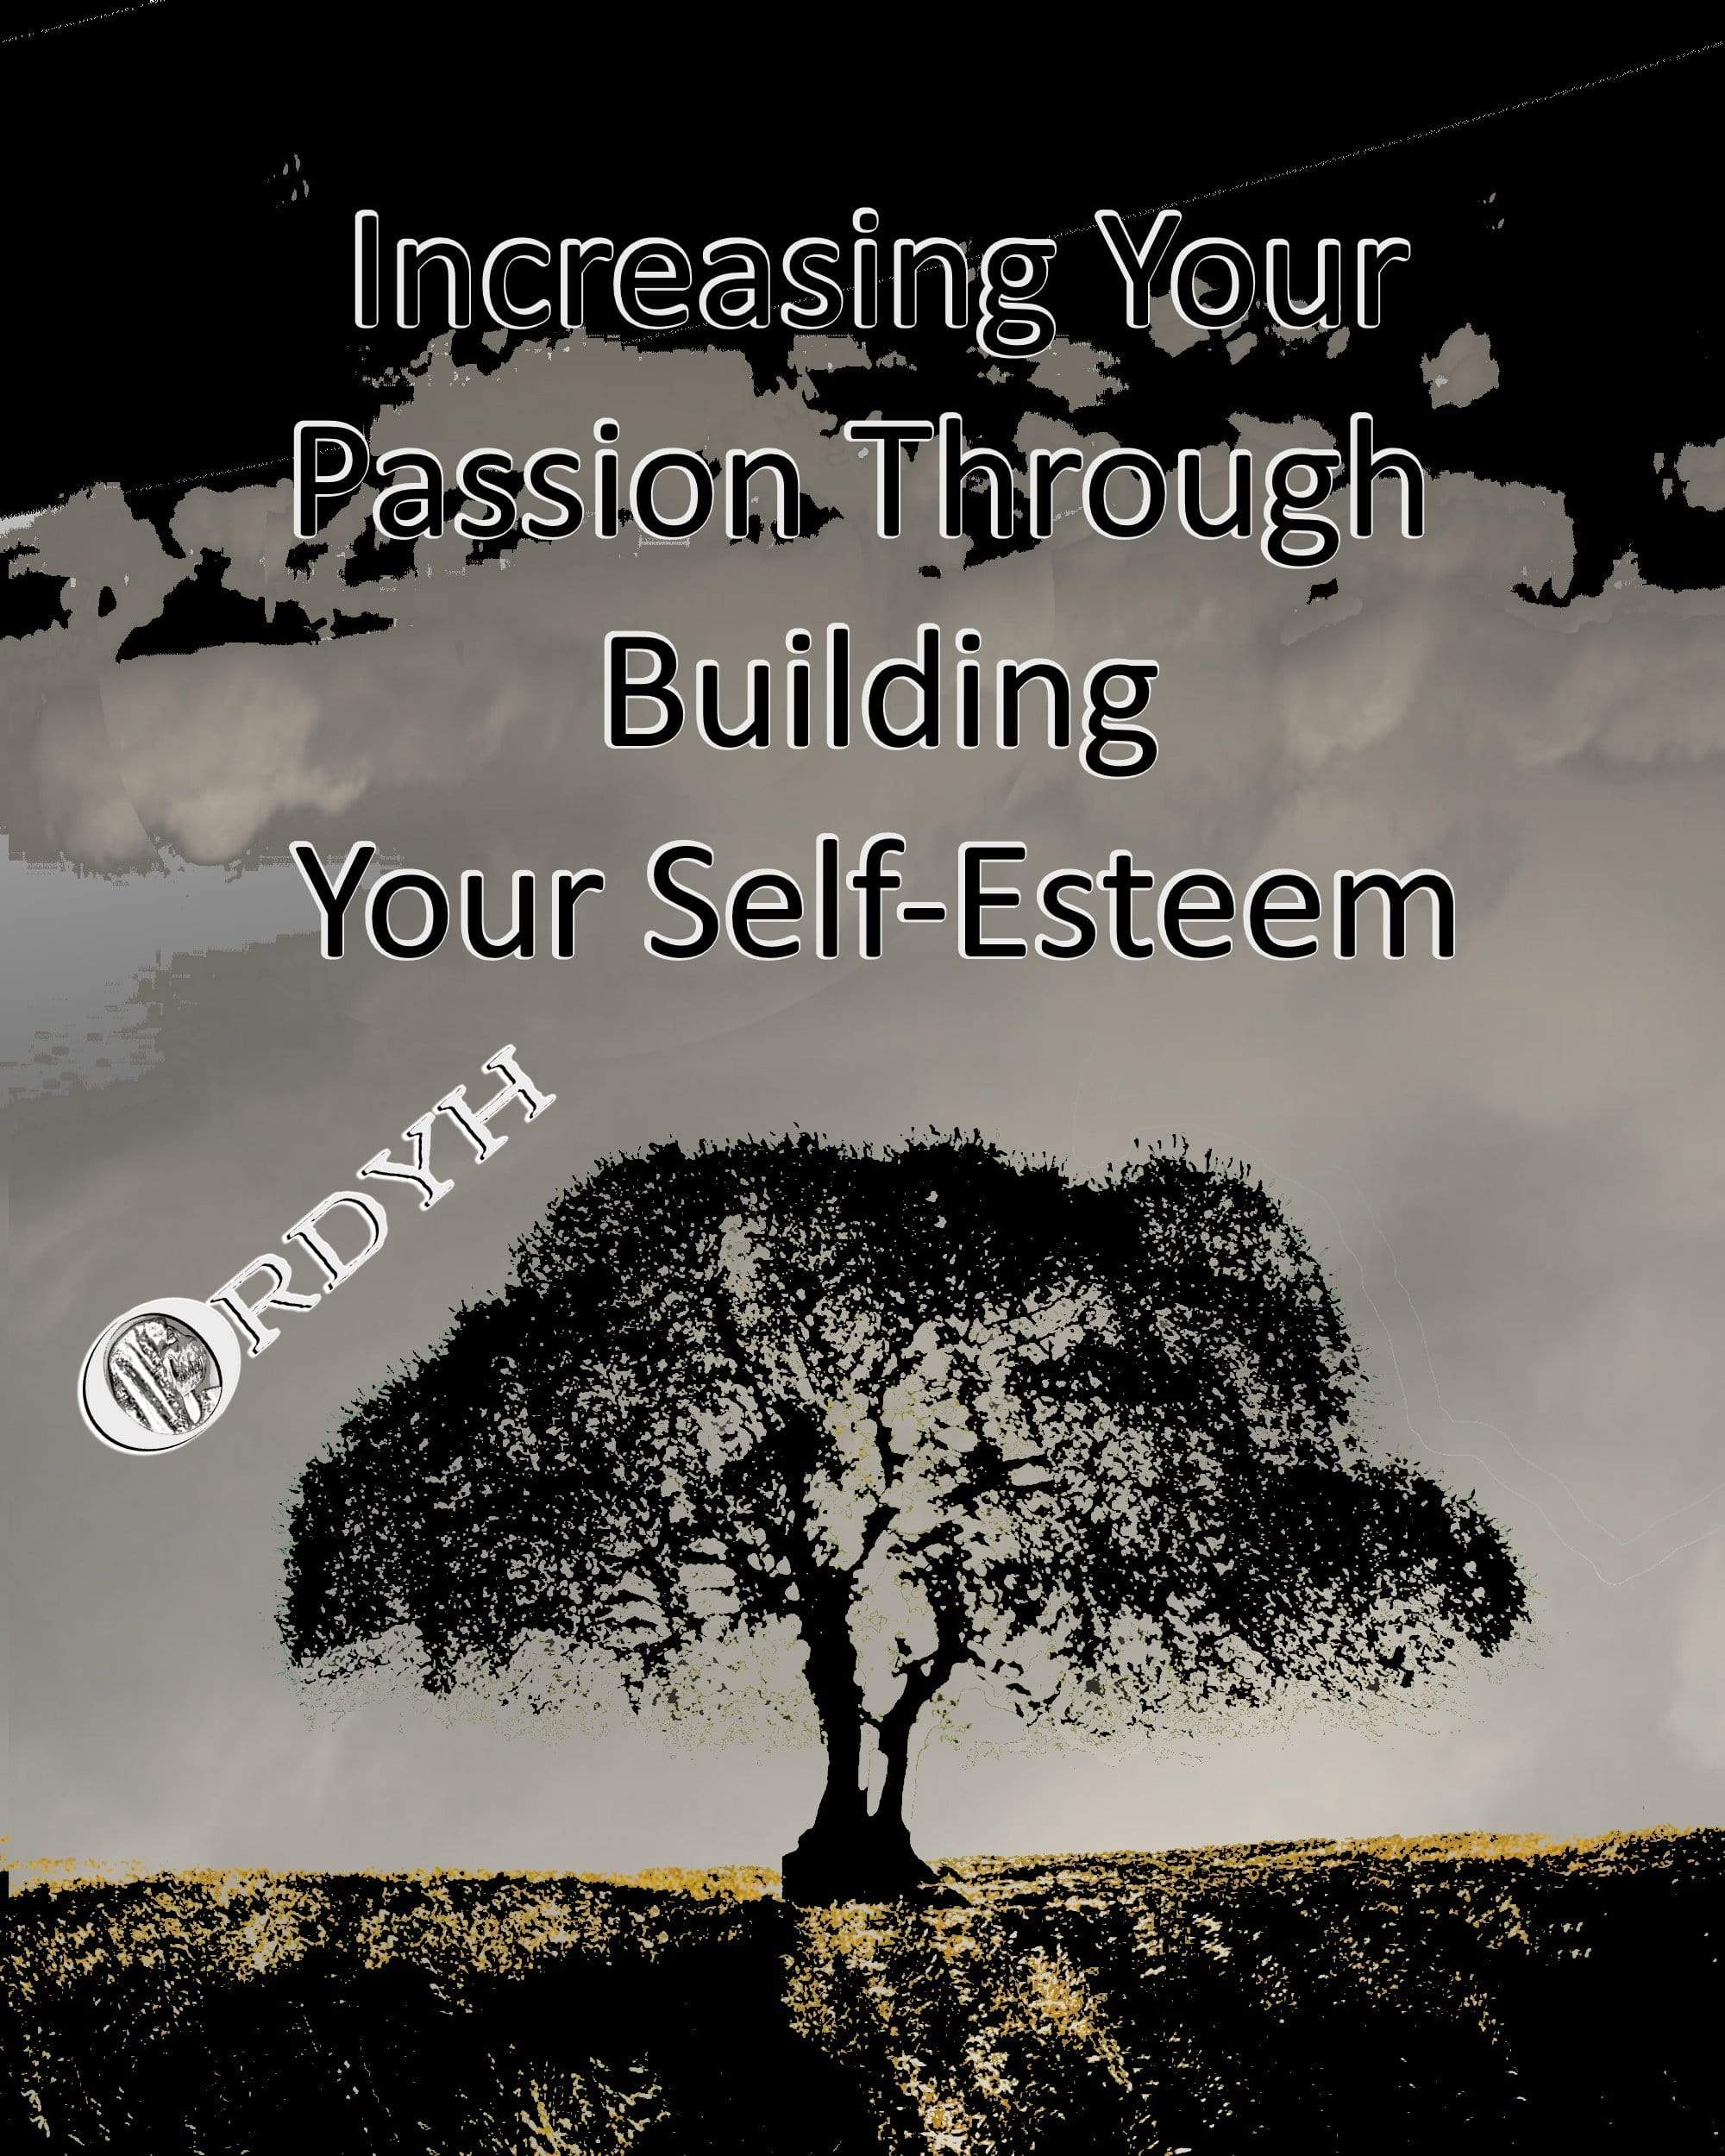 Increasing Your Passion Through Building Your Self-Esteem - Ordyh.com